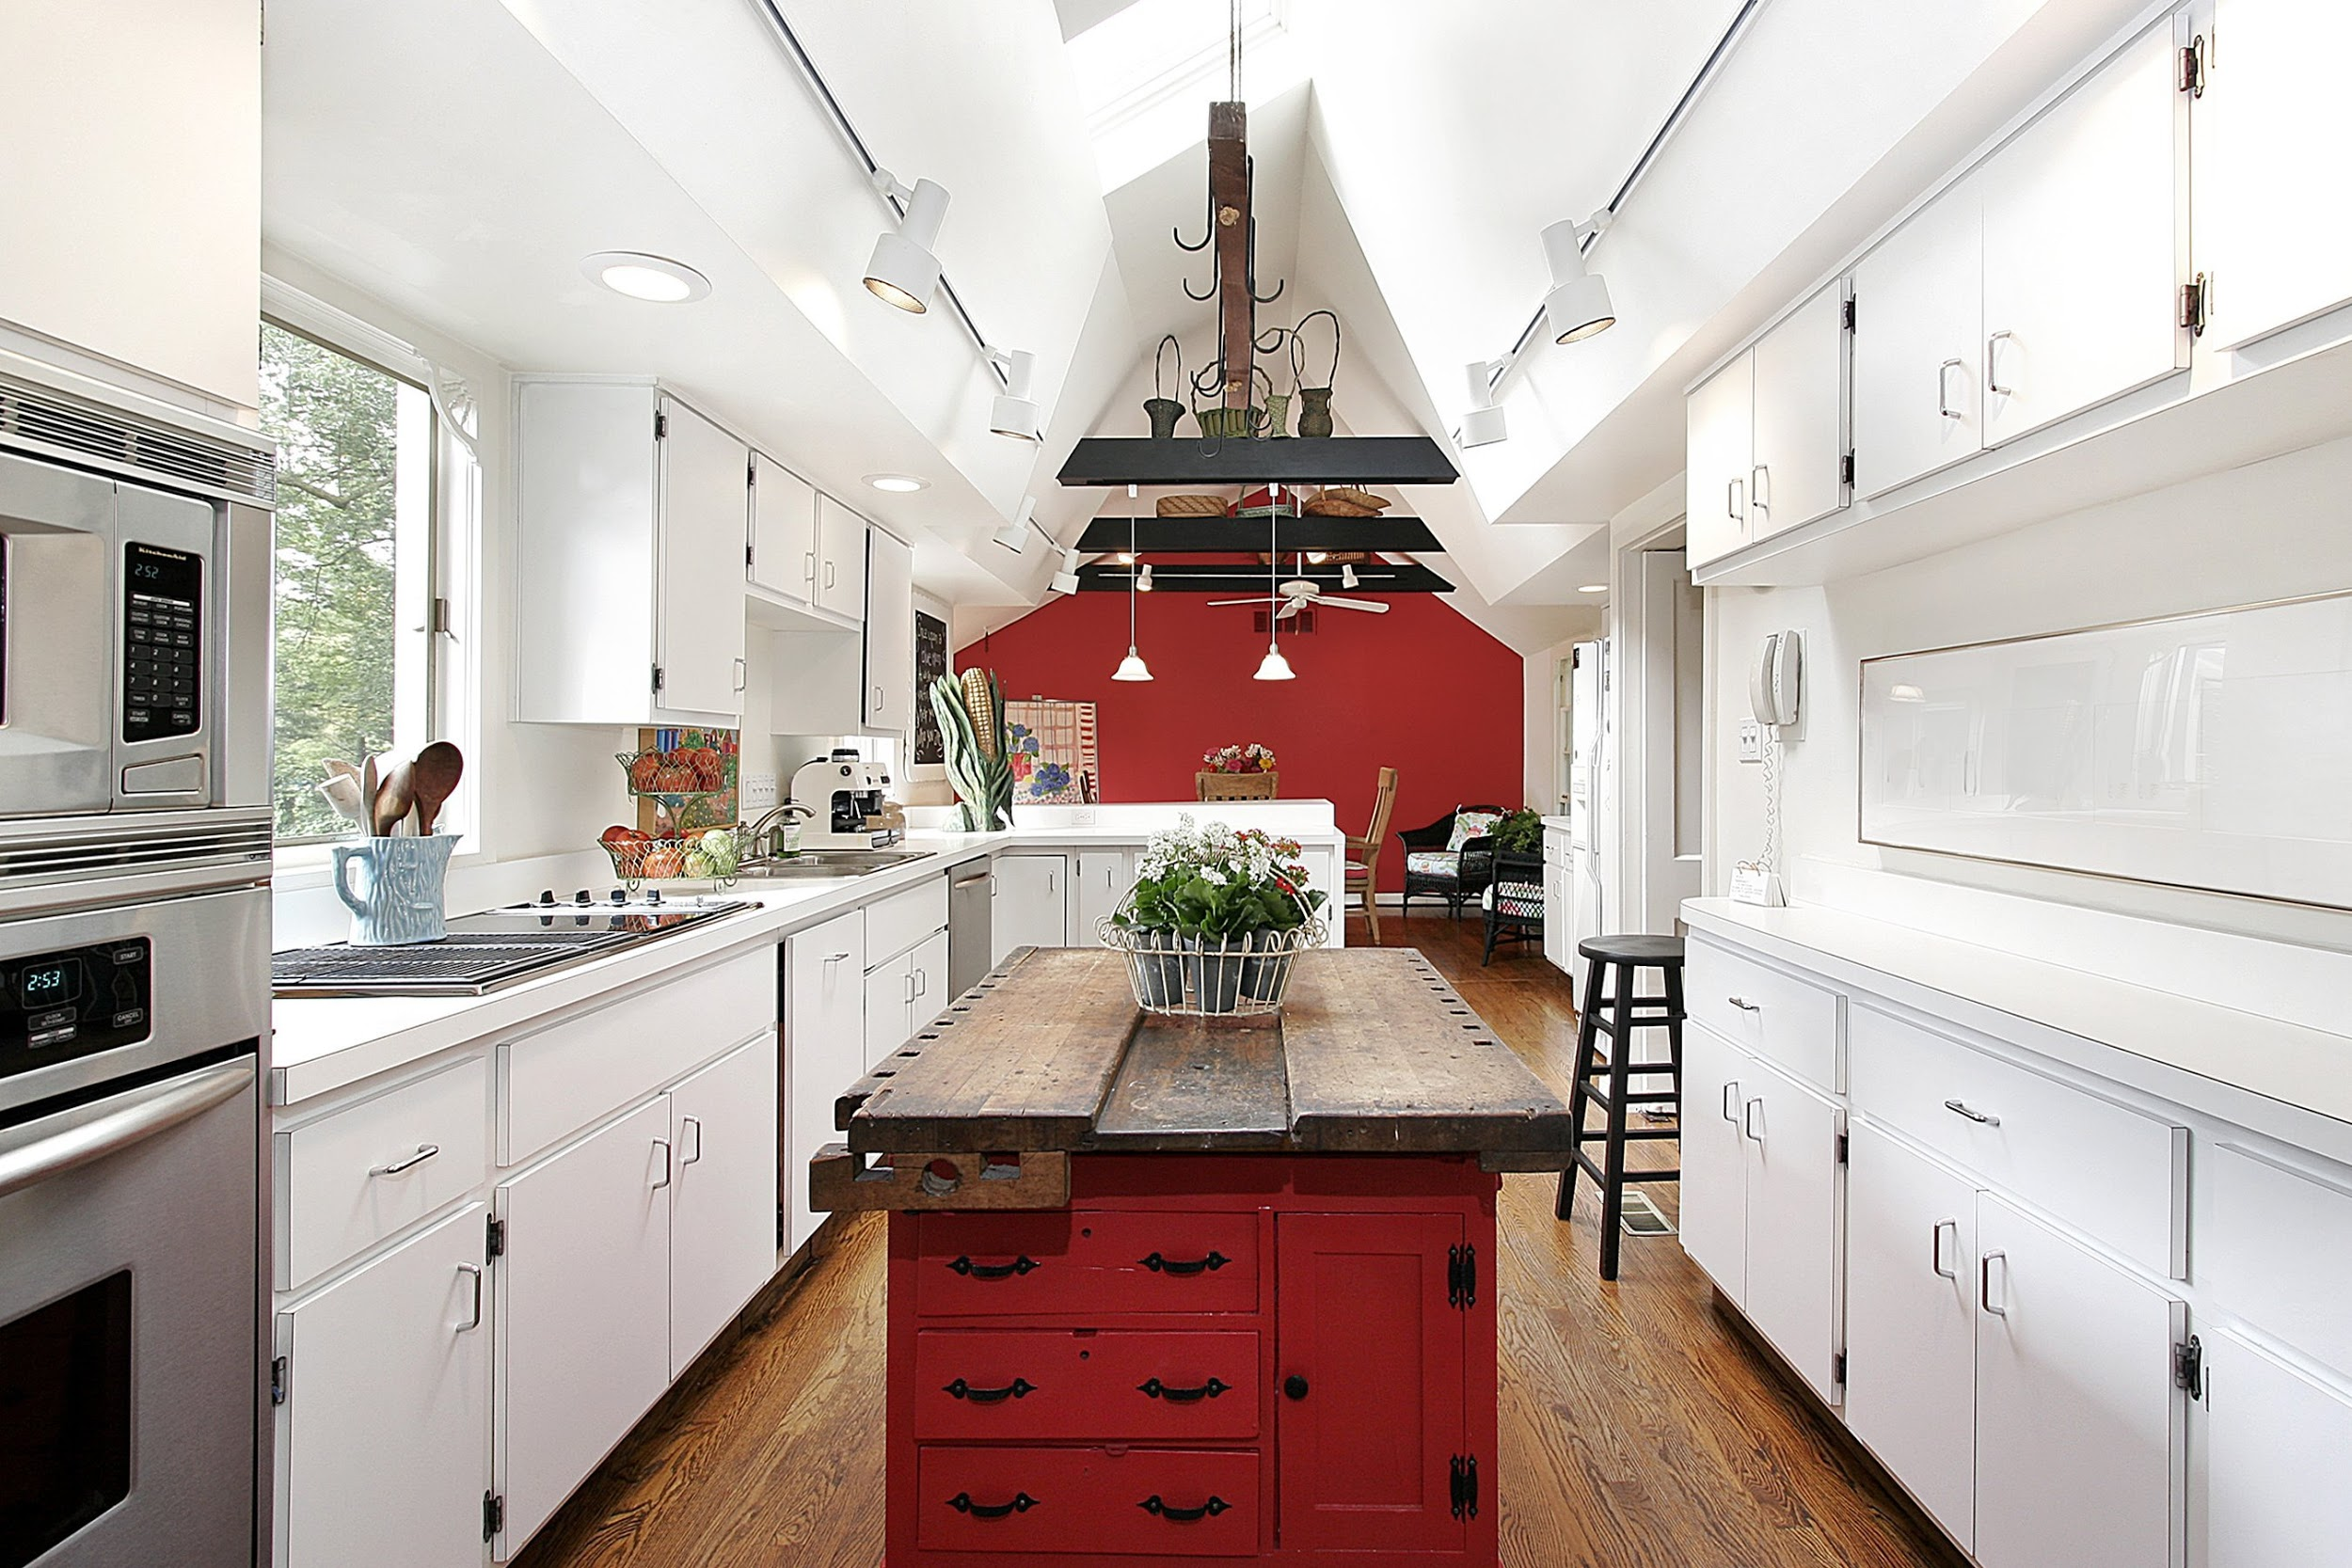 Kitchen Extendable Island Article Image